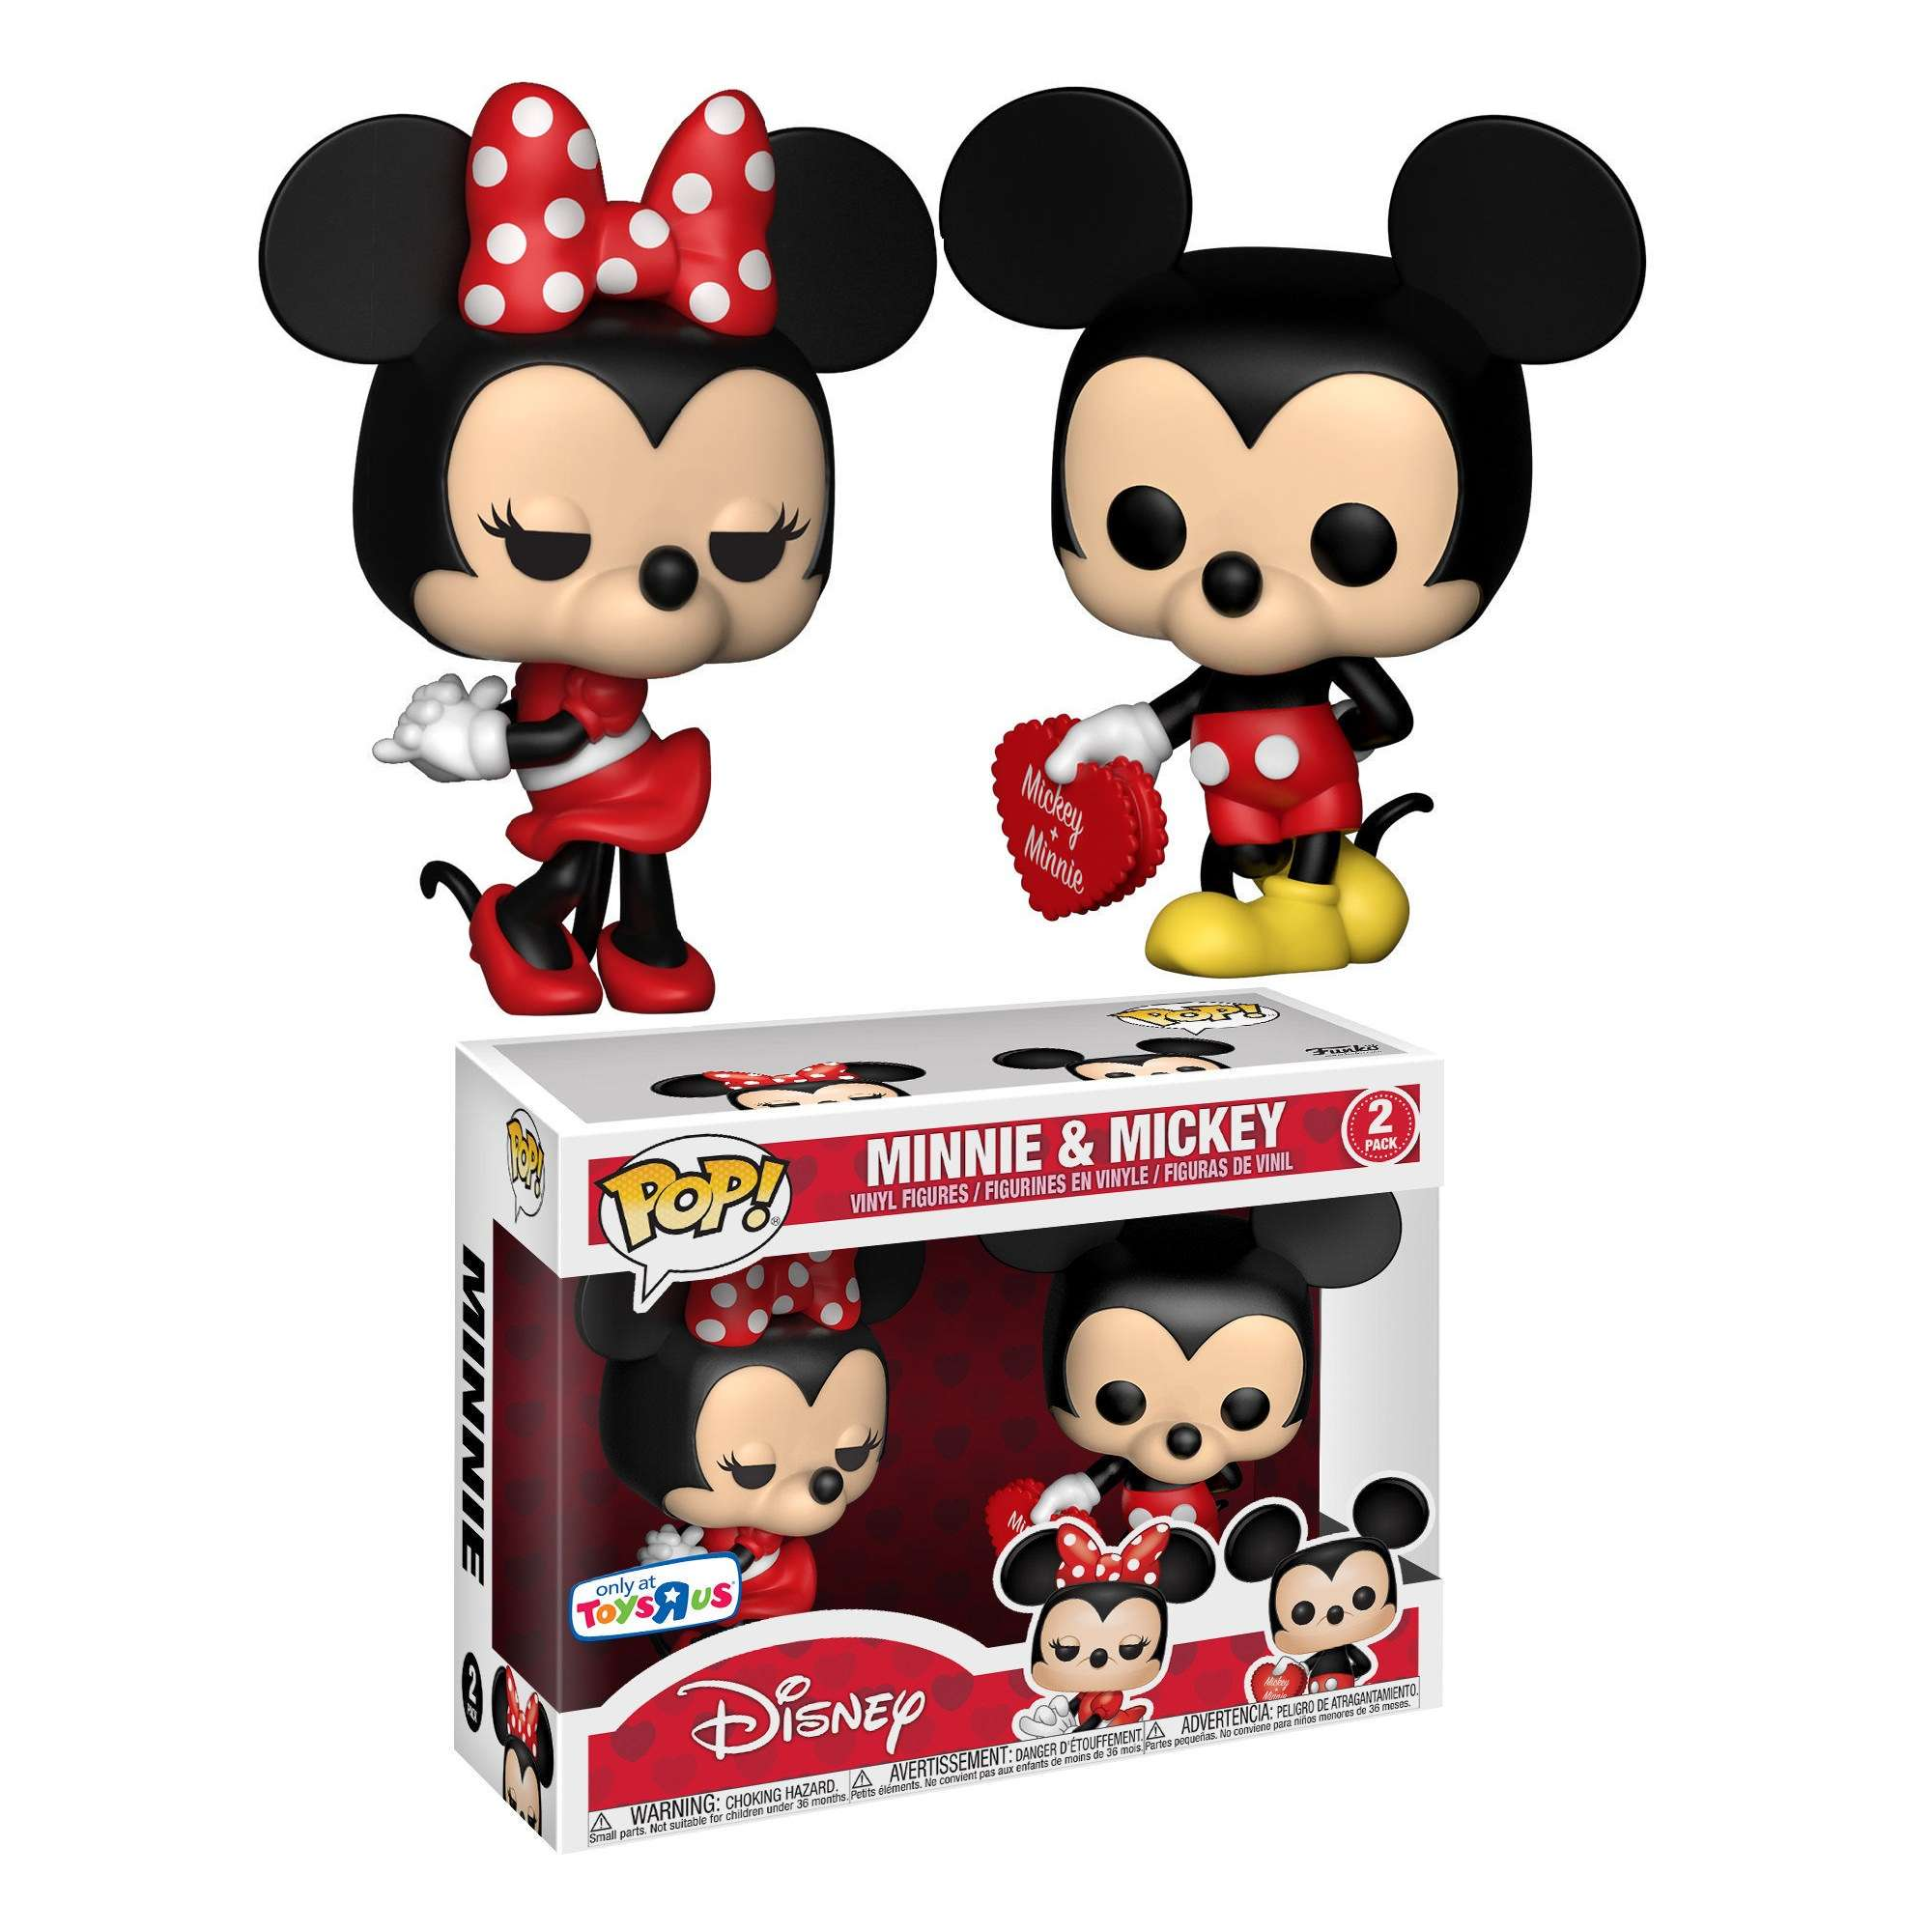 POP!: Disney - Minnie & Mickey 2 Pack (ToysRus Exclusive) Photo